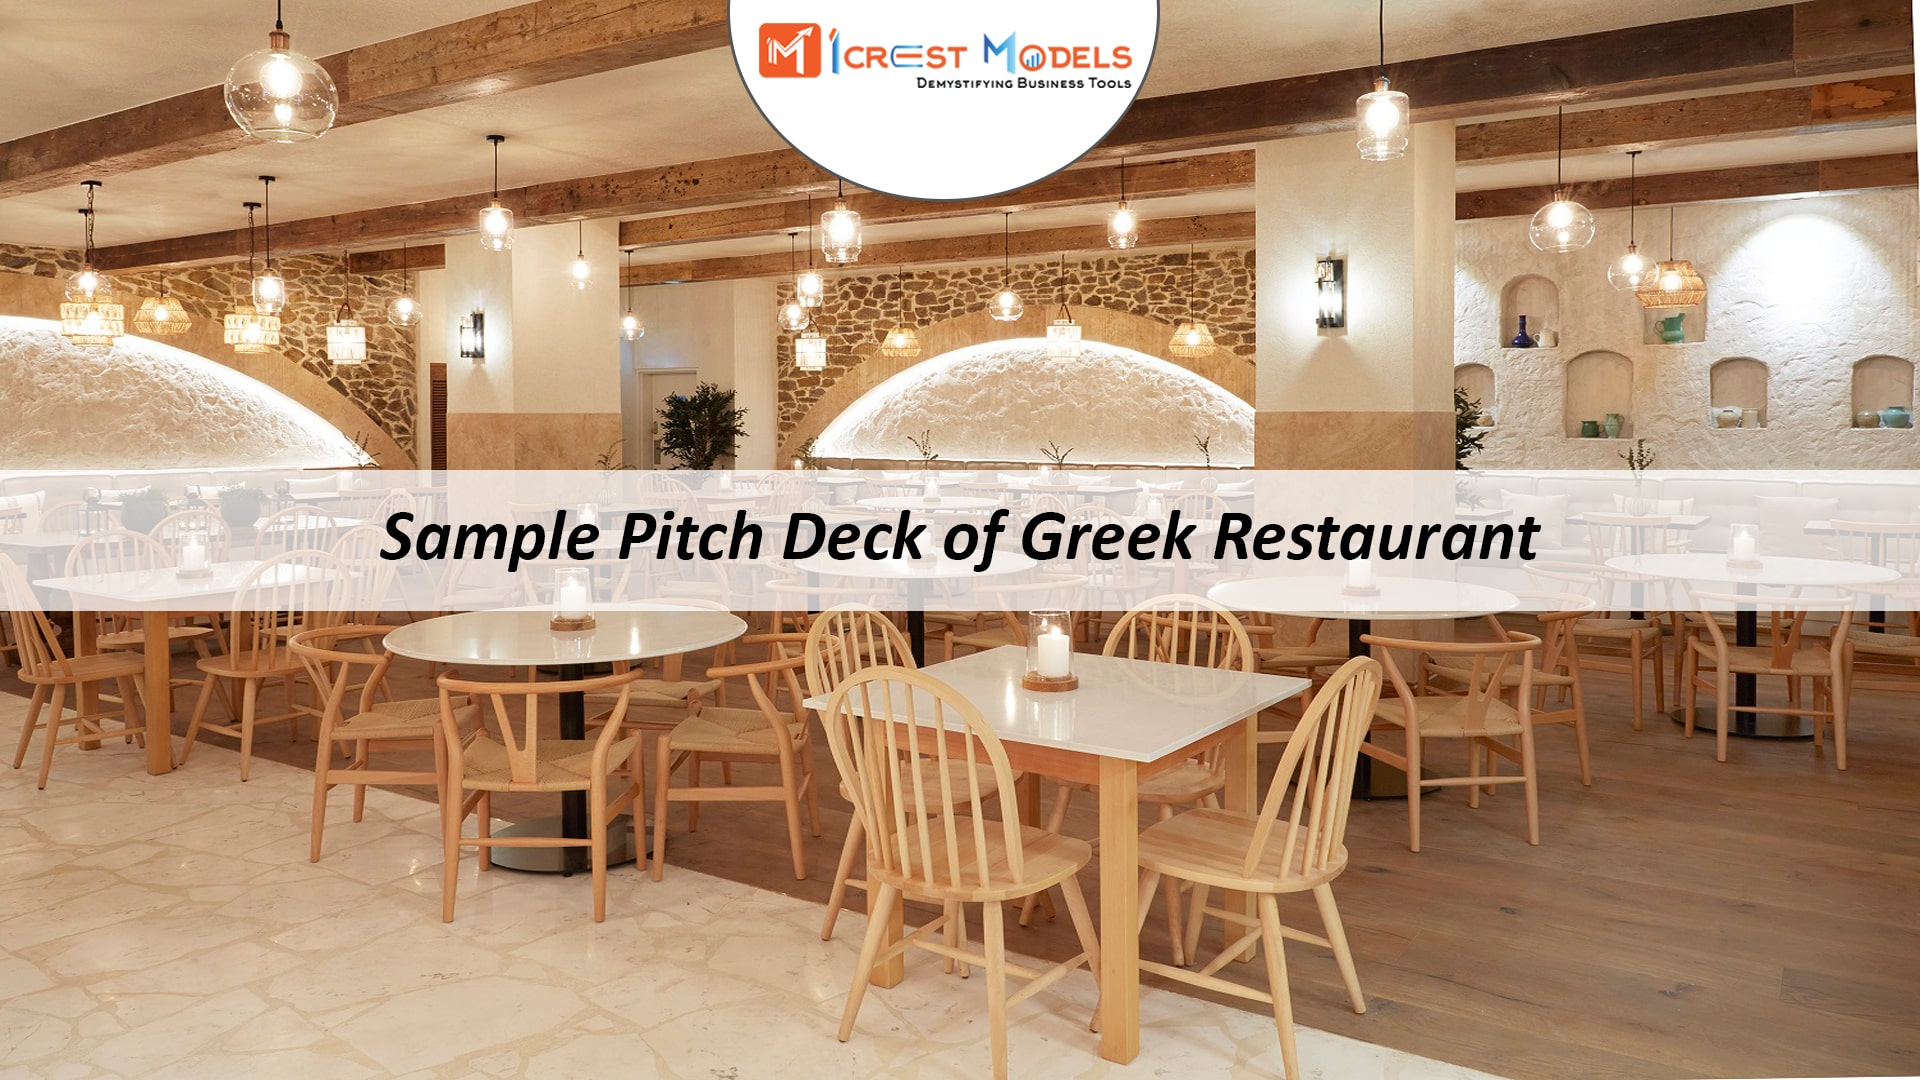 Pitch Deck of Greek Restaurant